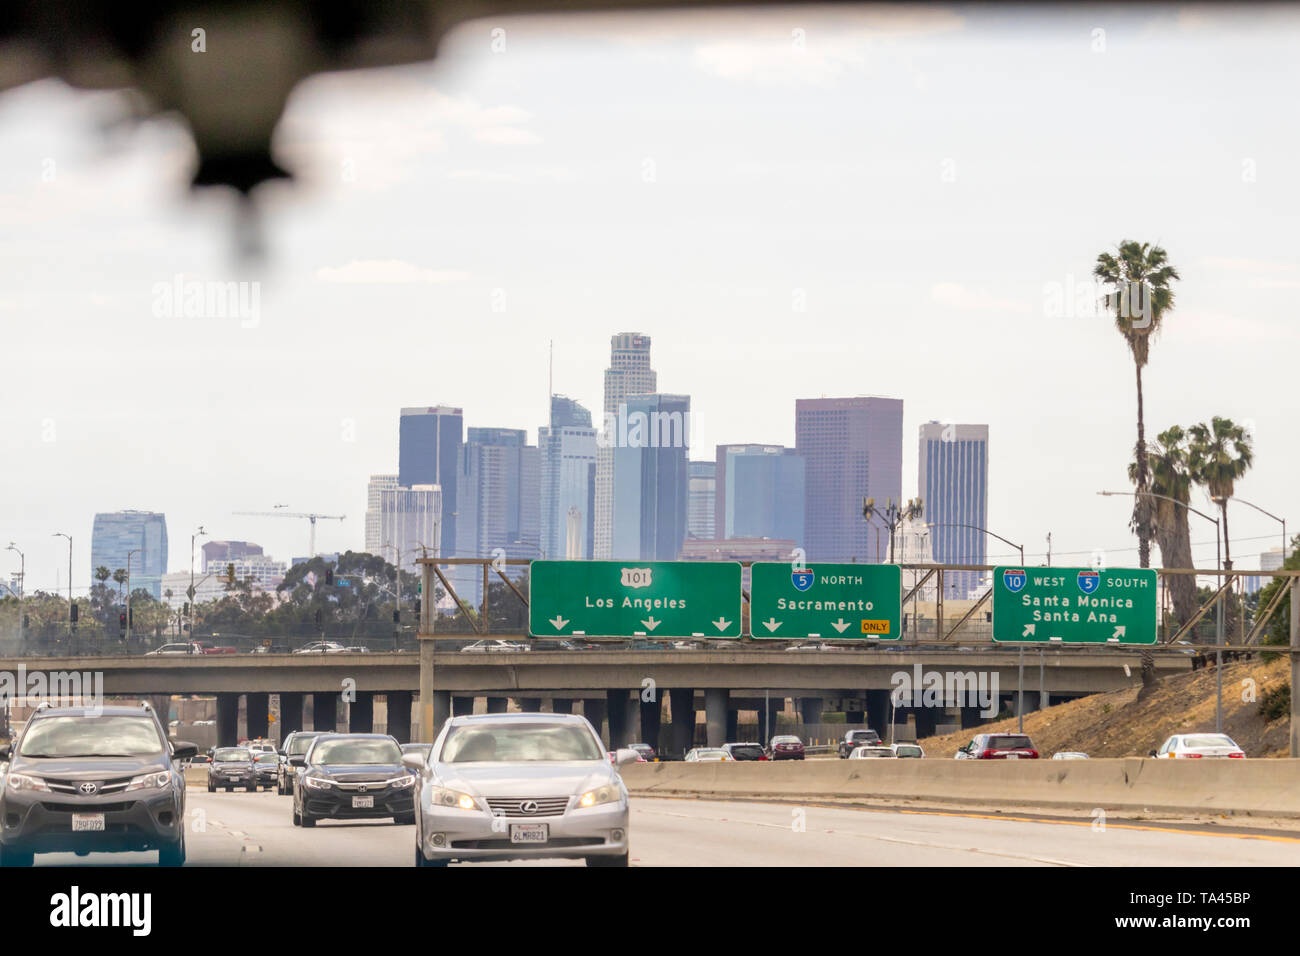 Los Angeles, California USA - May 2019: Downtown buildings skyline and signs on freeway indicating which lanes go to Los Angeles and which ones go nor Stock Photo